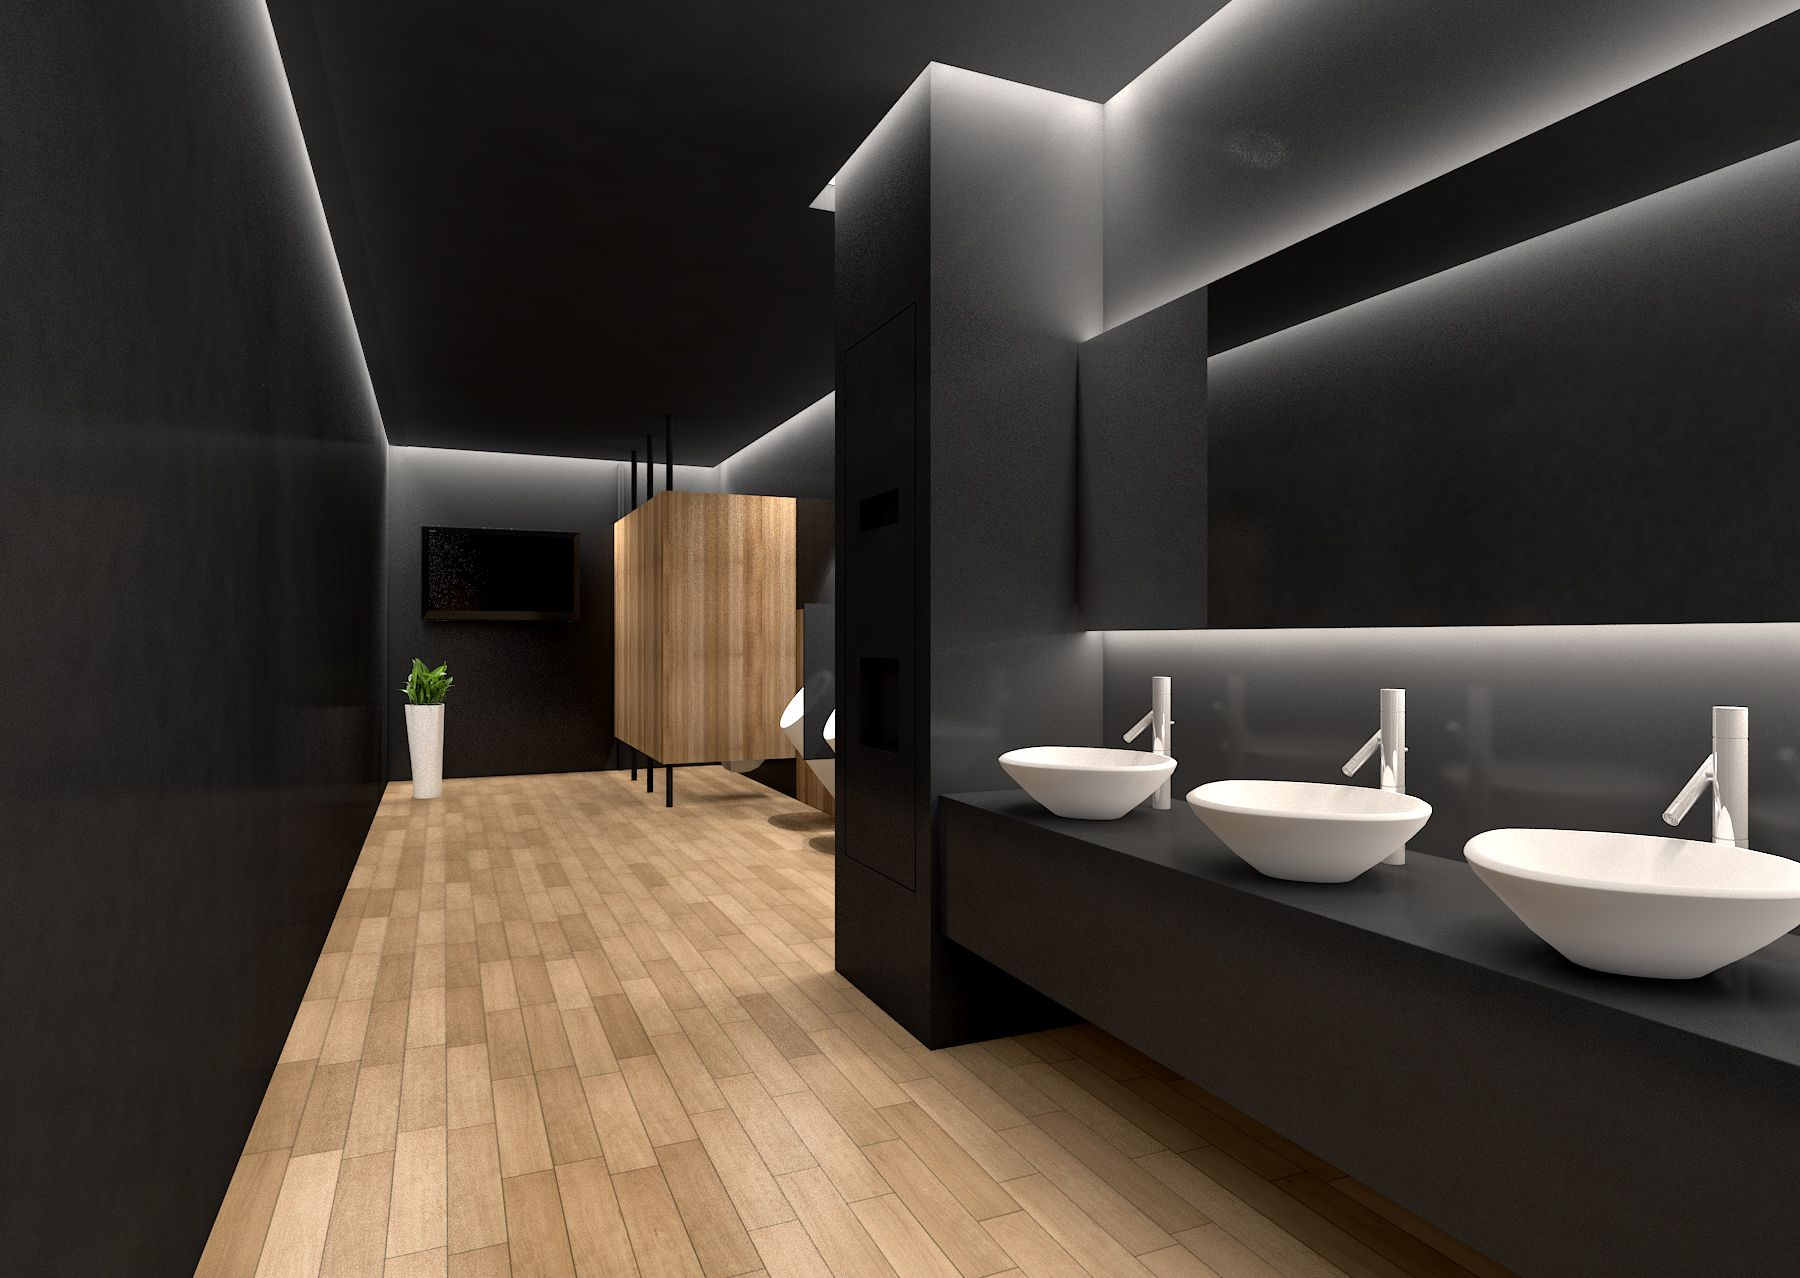 commercial toilet design - Google 搜尋   Restroom design, Office